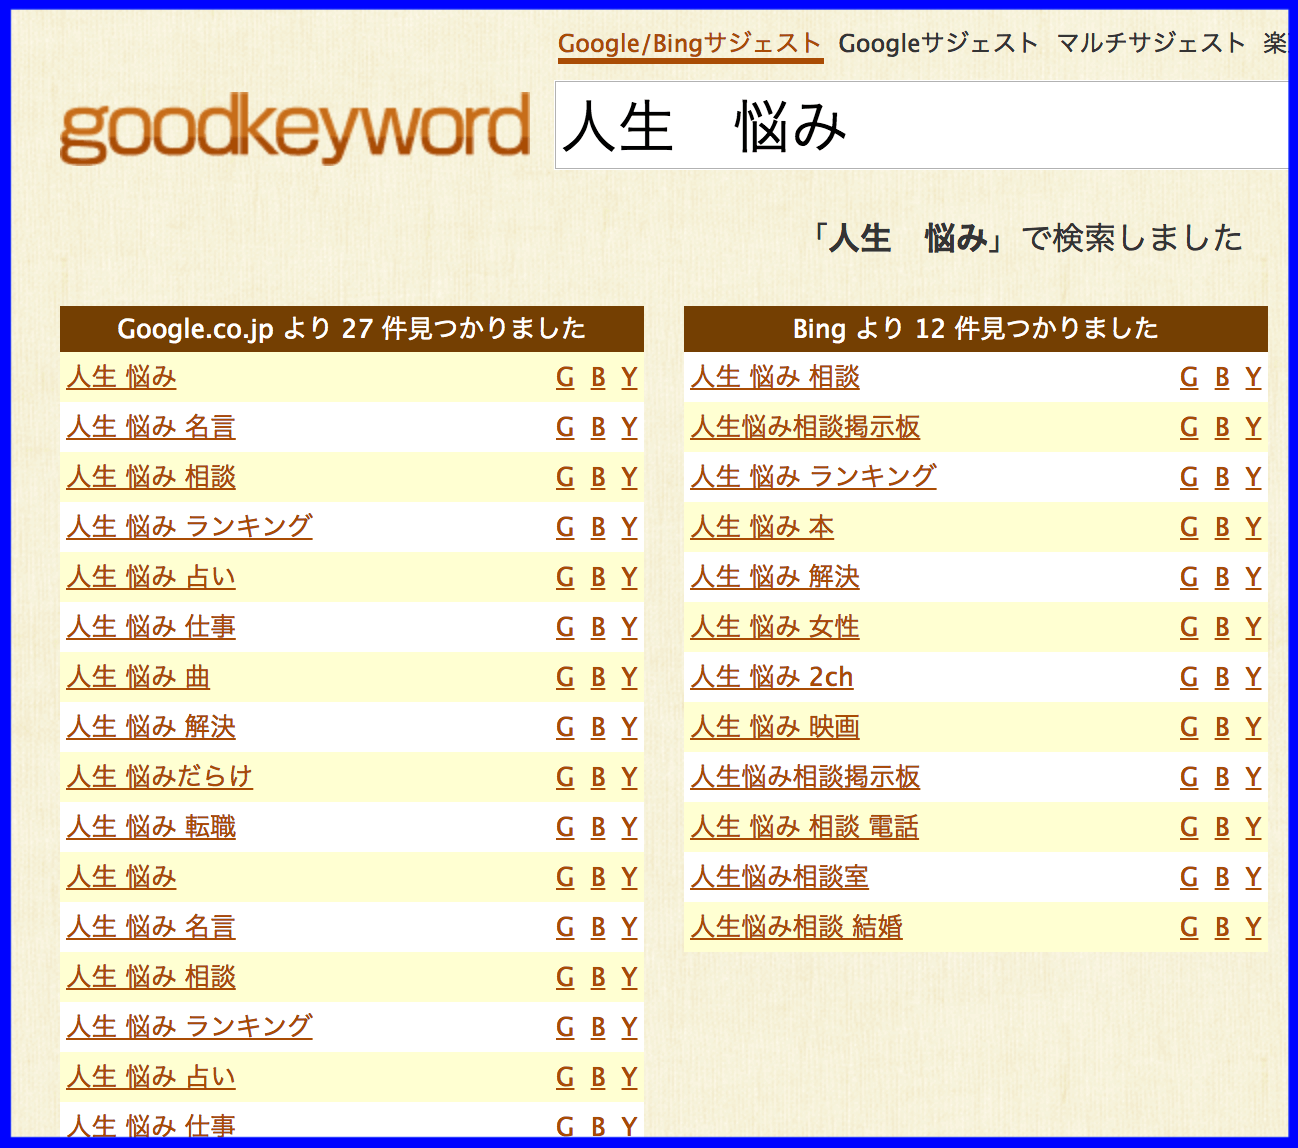 goodkeyword②の写真